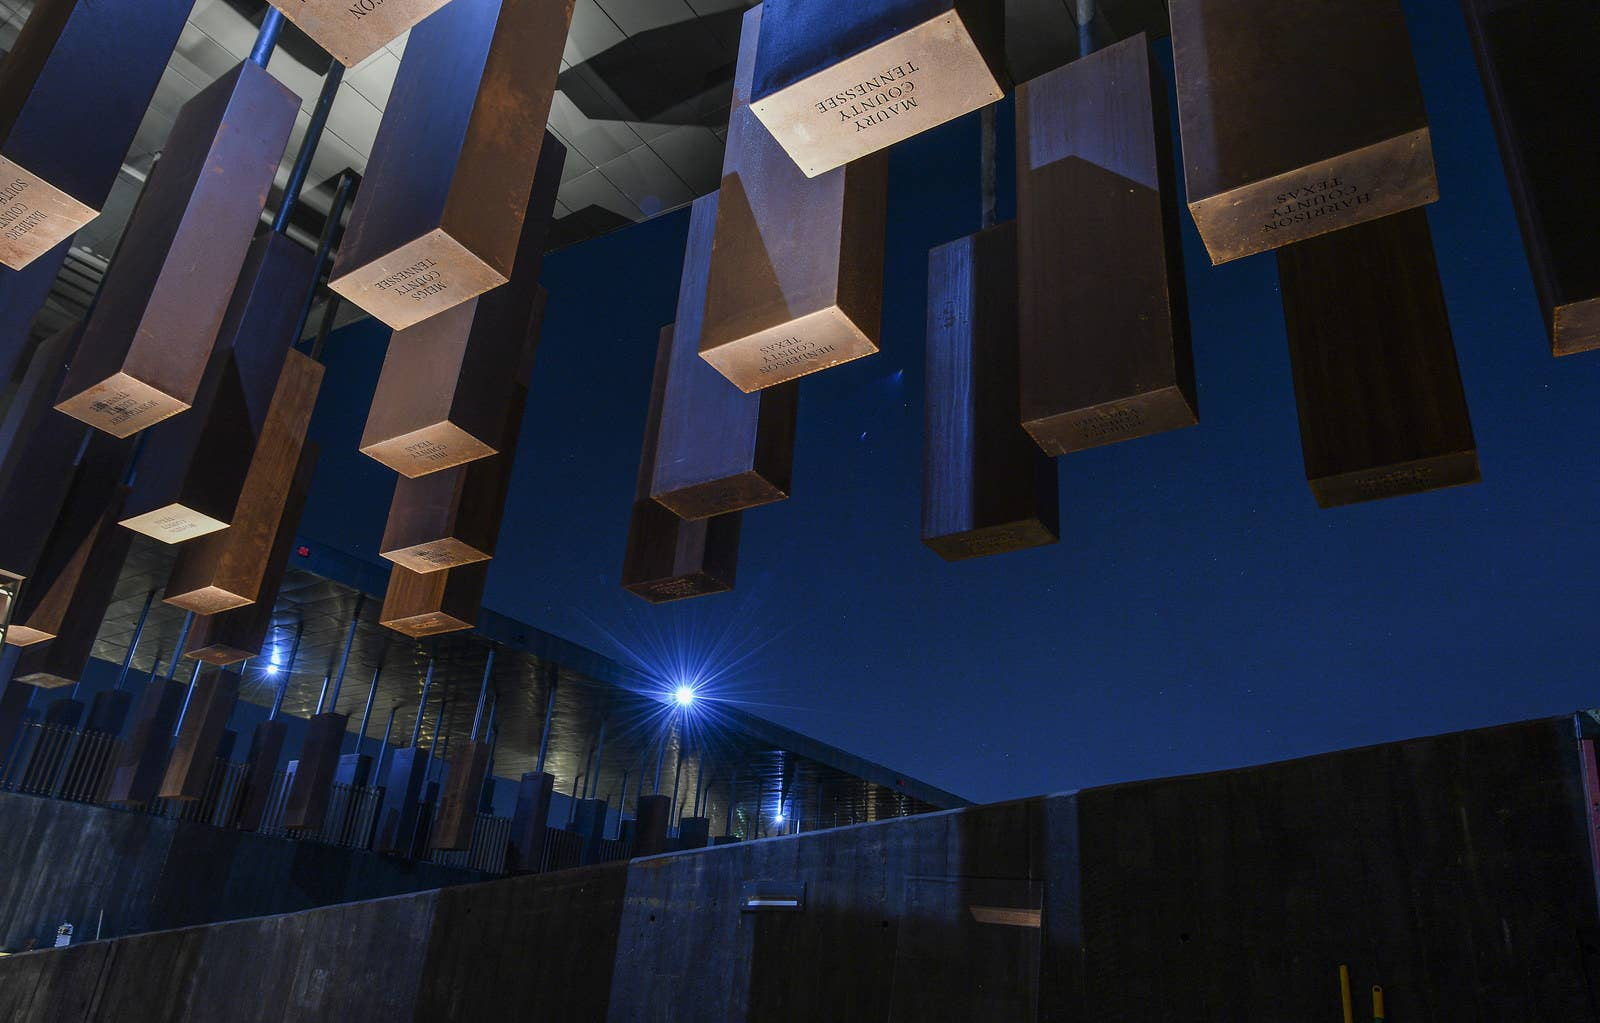 Names and dates of lynching victims are inscribed on corten steel monuments, representing each county in the United States where a lynching took place. More than four thousand victims are honored at the memorial.